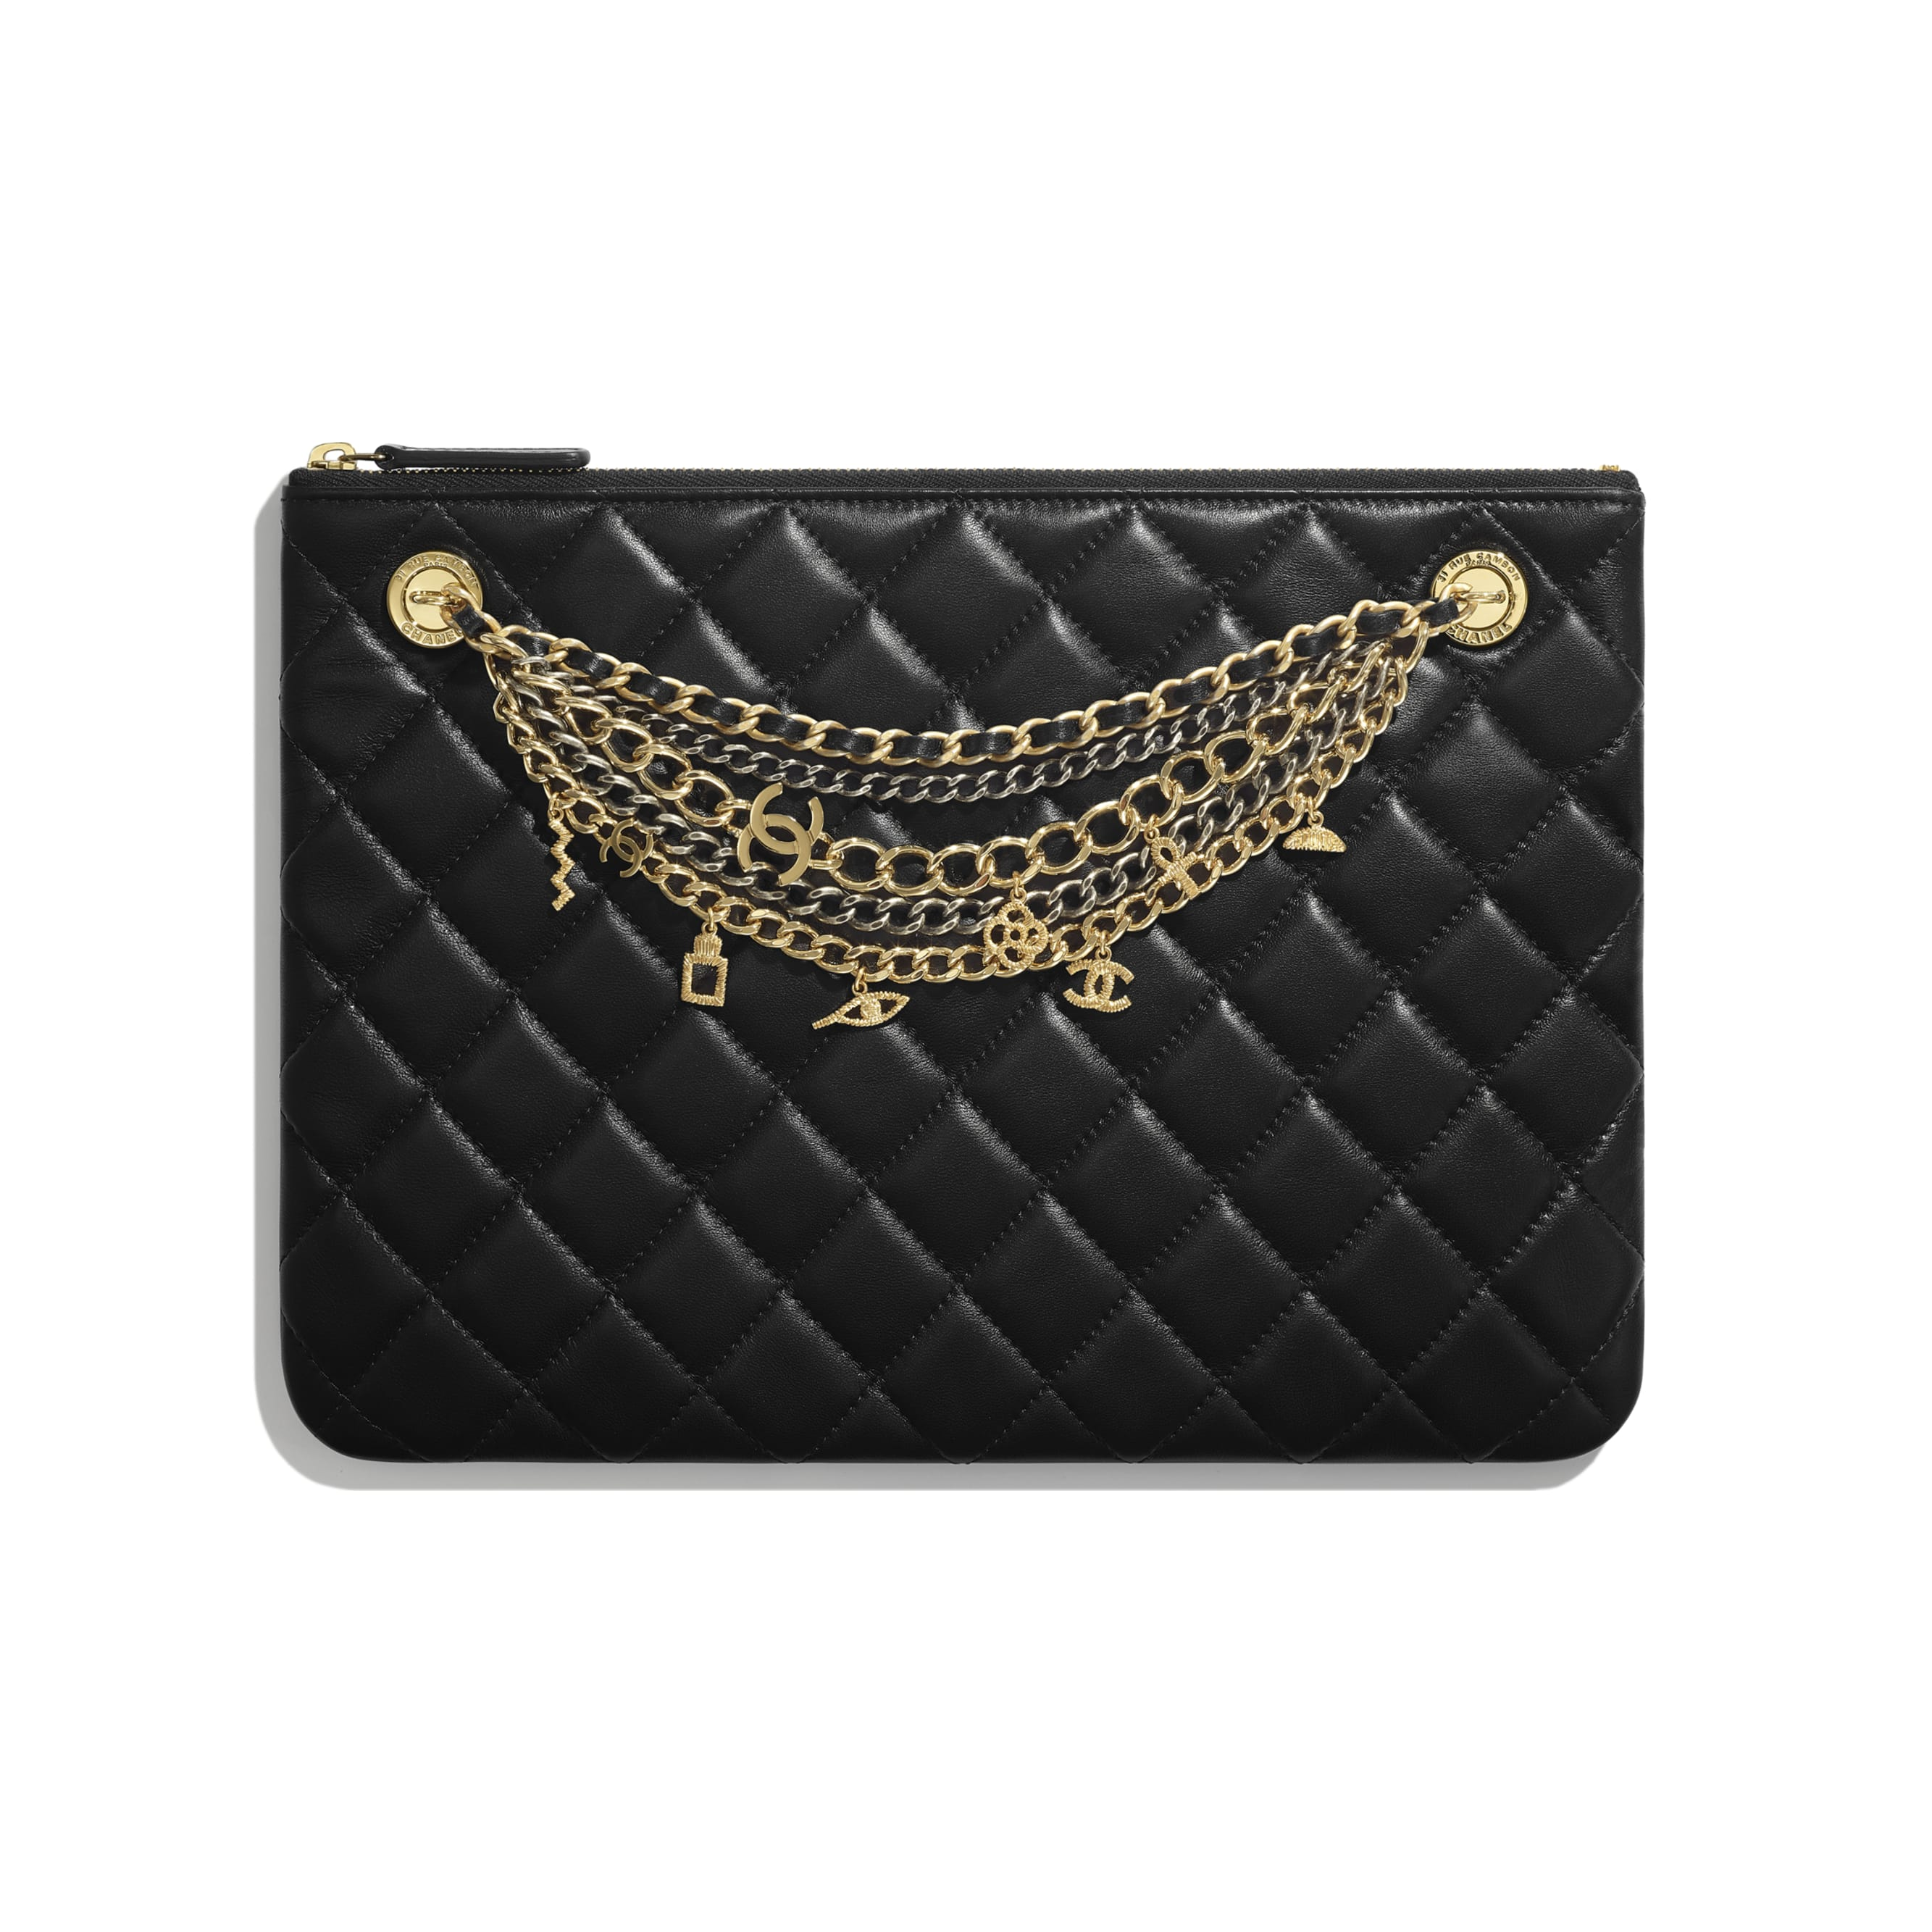 Pouch - Black - Lambskin, Gold-Tone & Silver-Tone Metal - Default view - see standard sized version